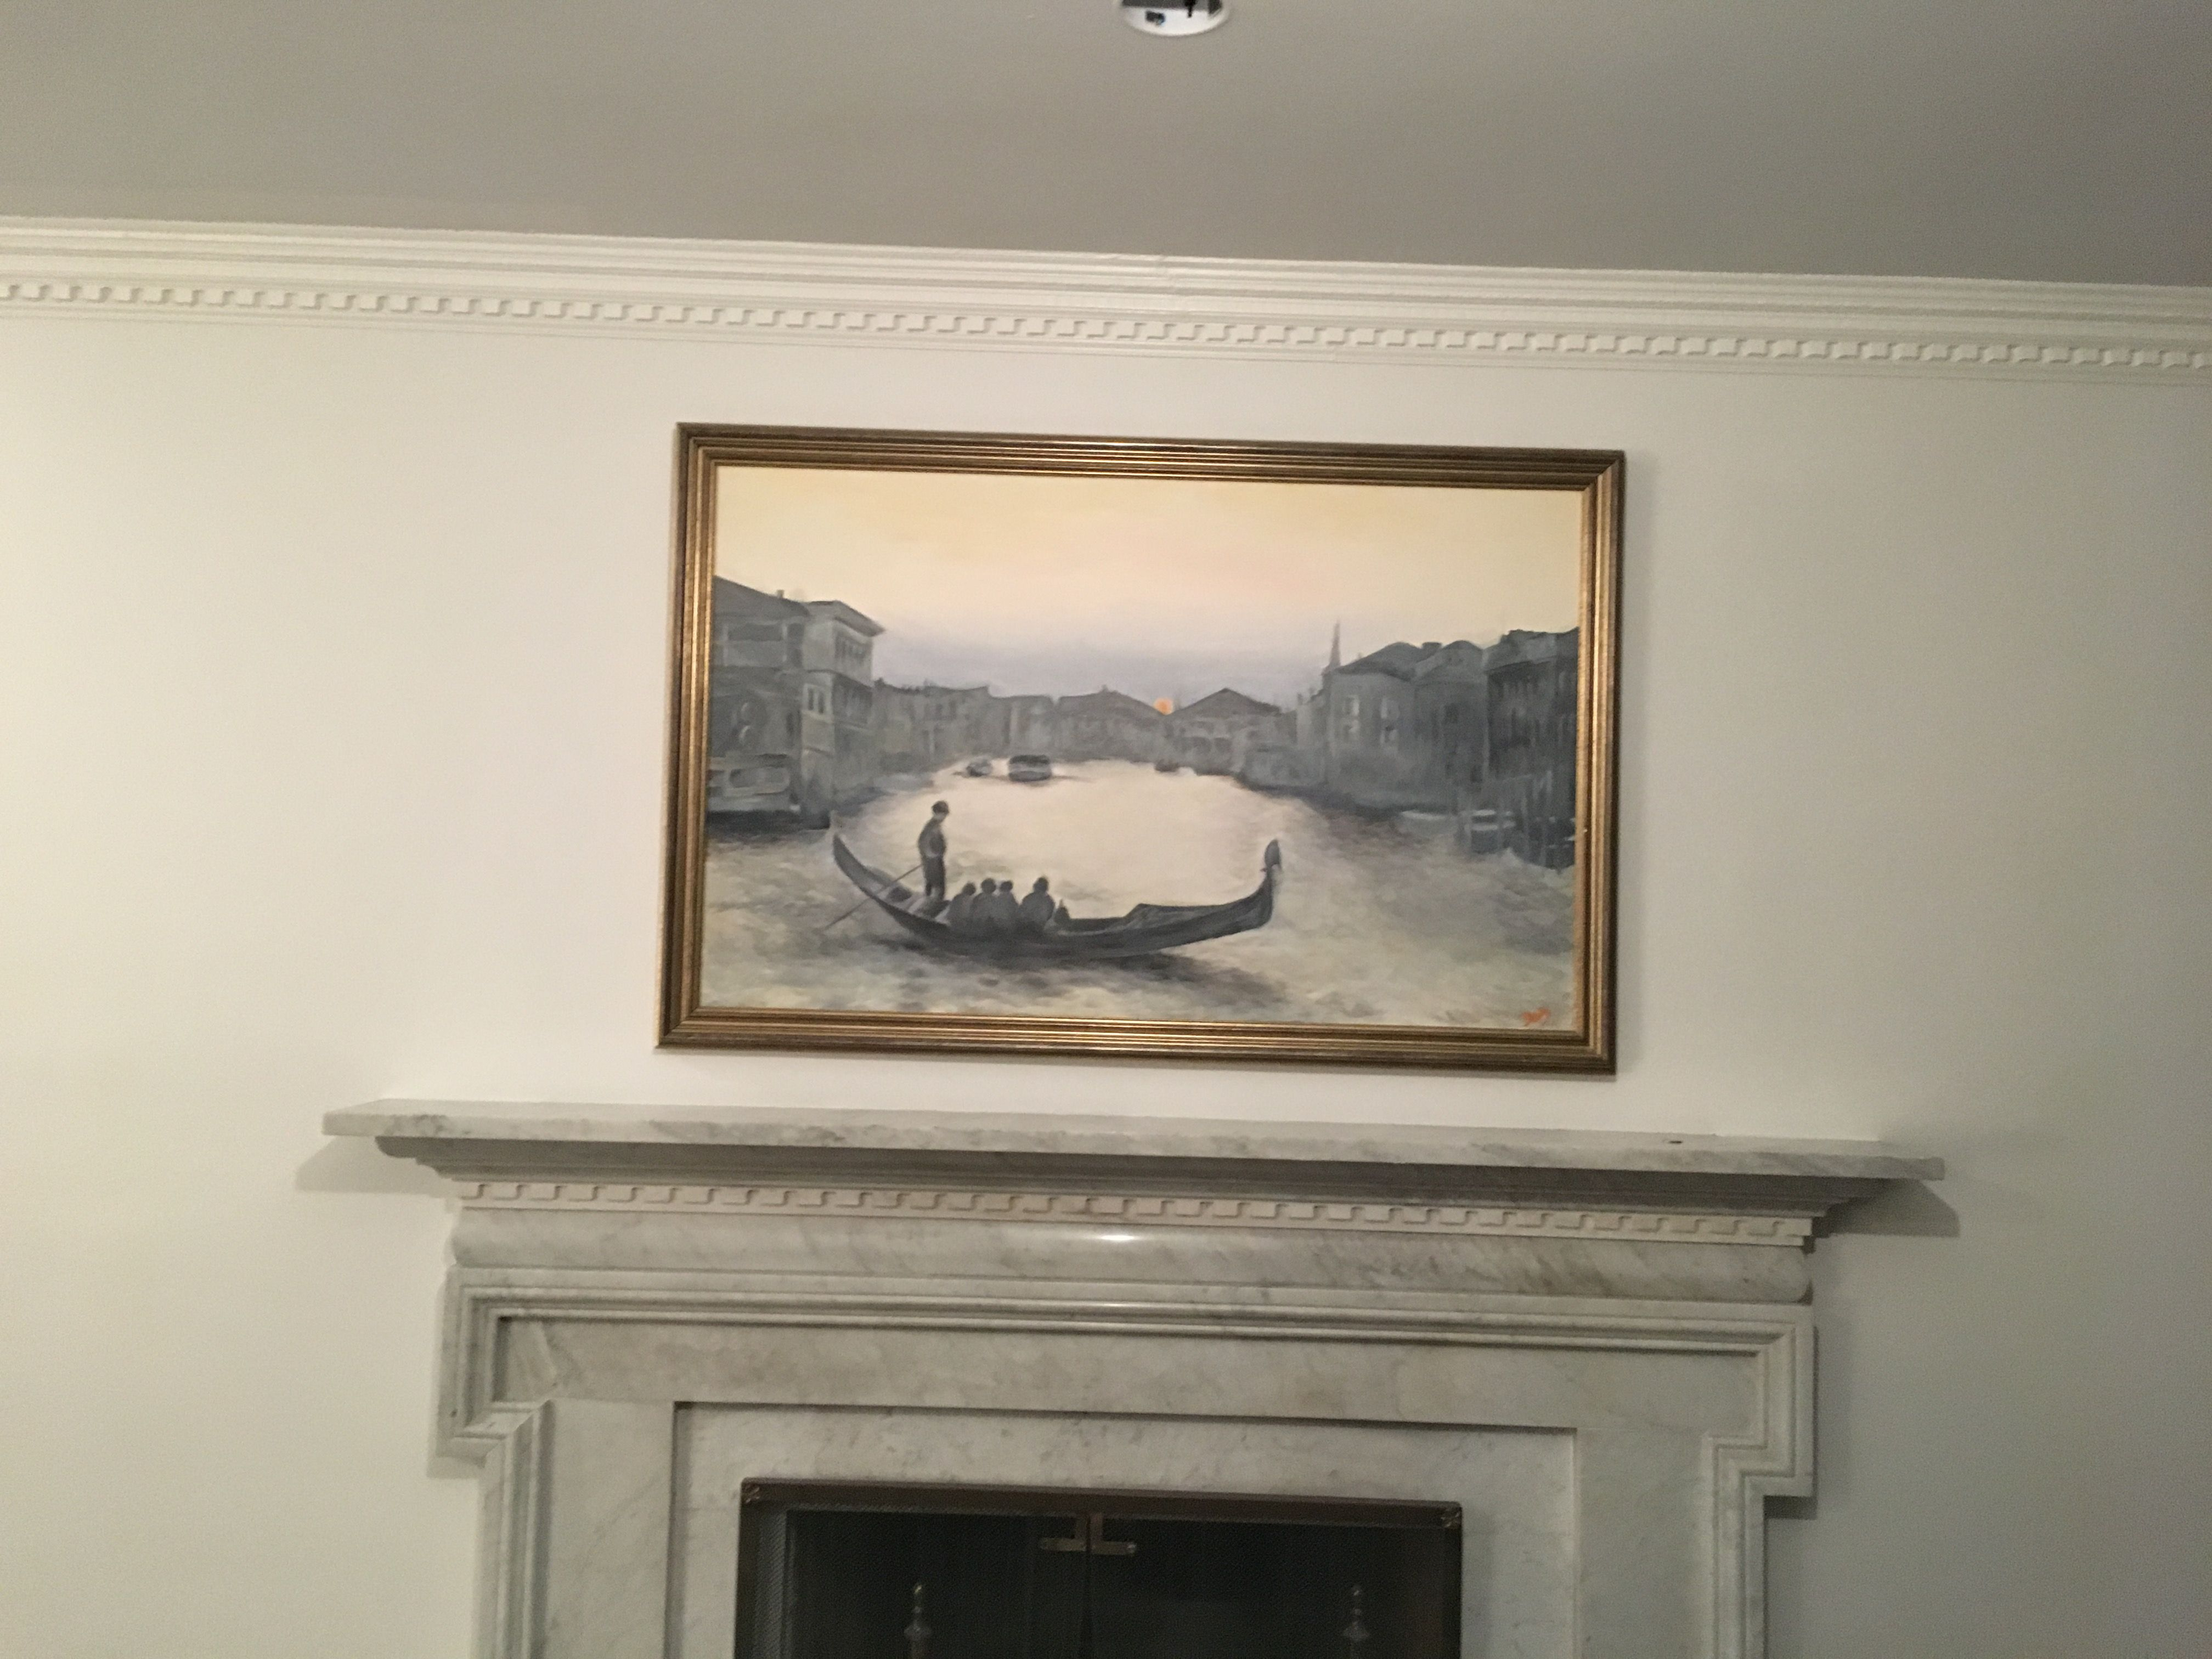 Mantle art professional picture hanging service custom framing professional picture hanging service custom framing by central galleries in cedarhurst ny jeuxipadfo Image collections